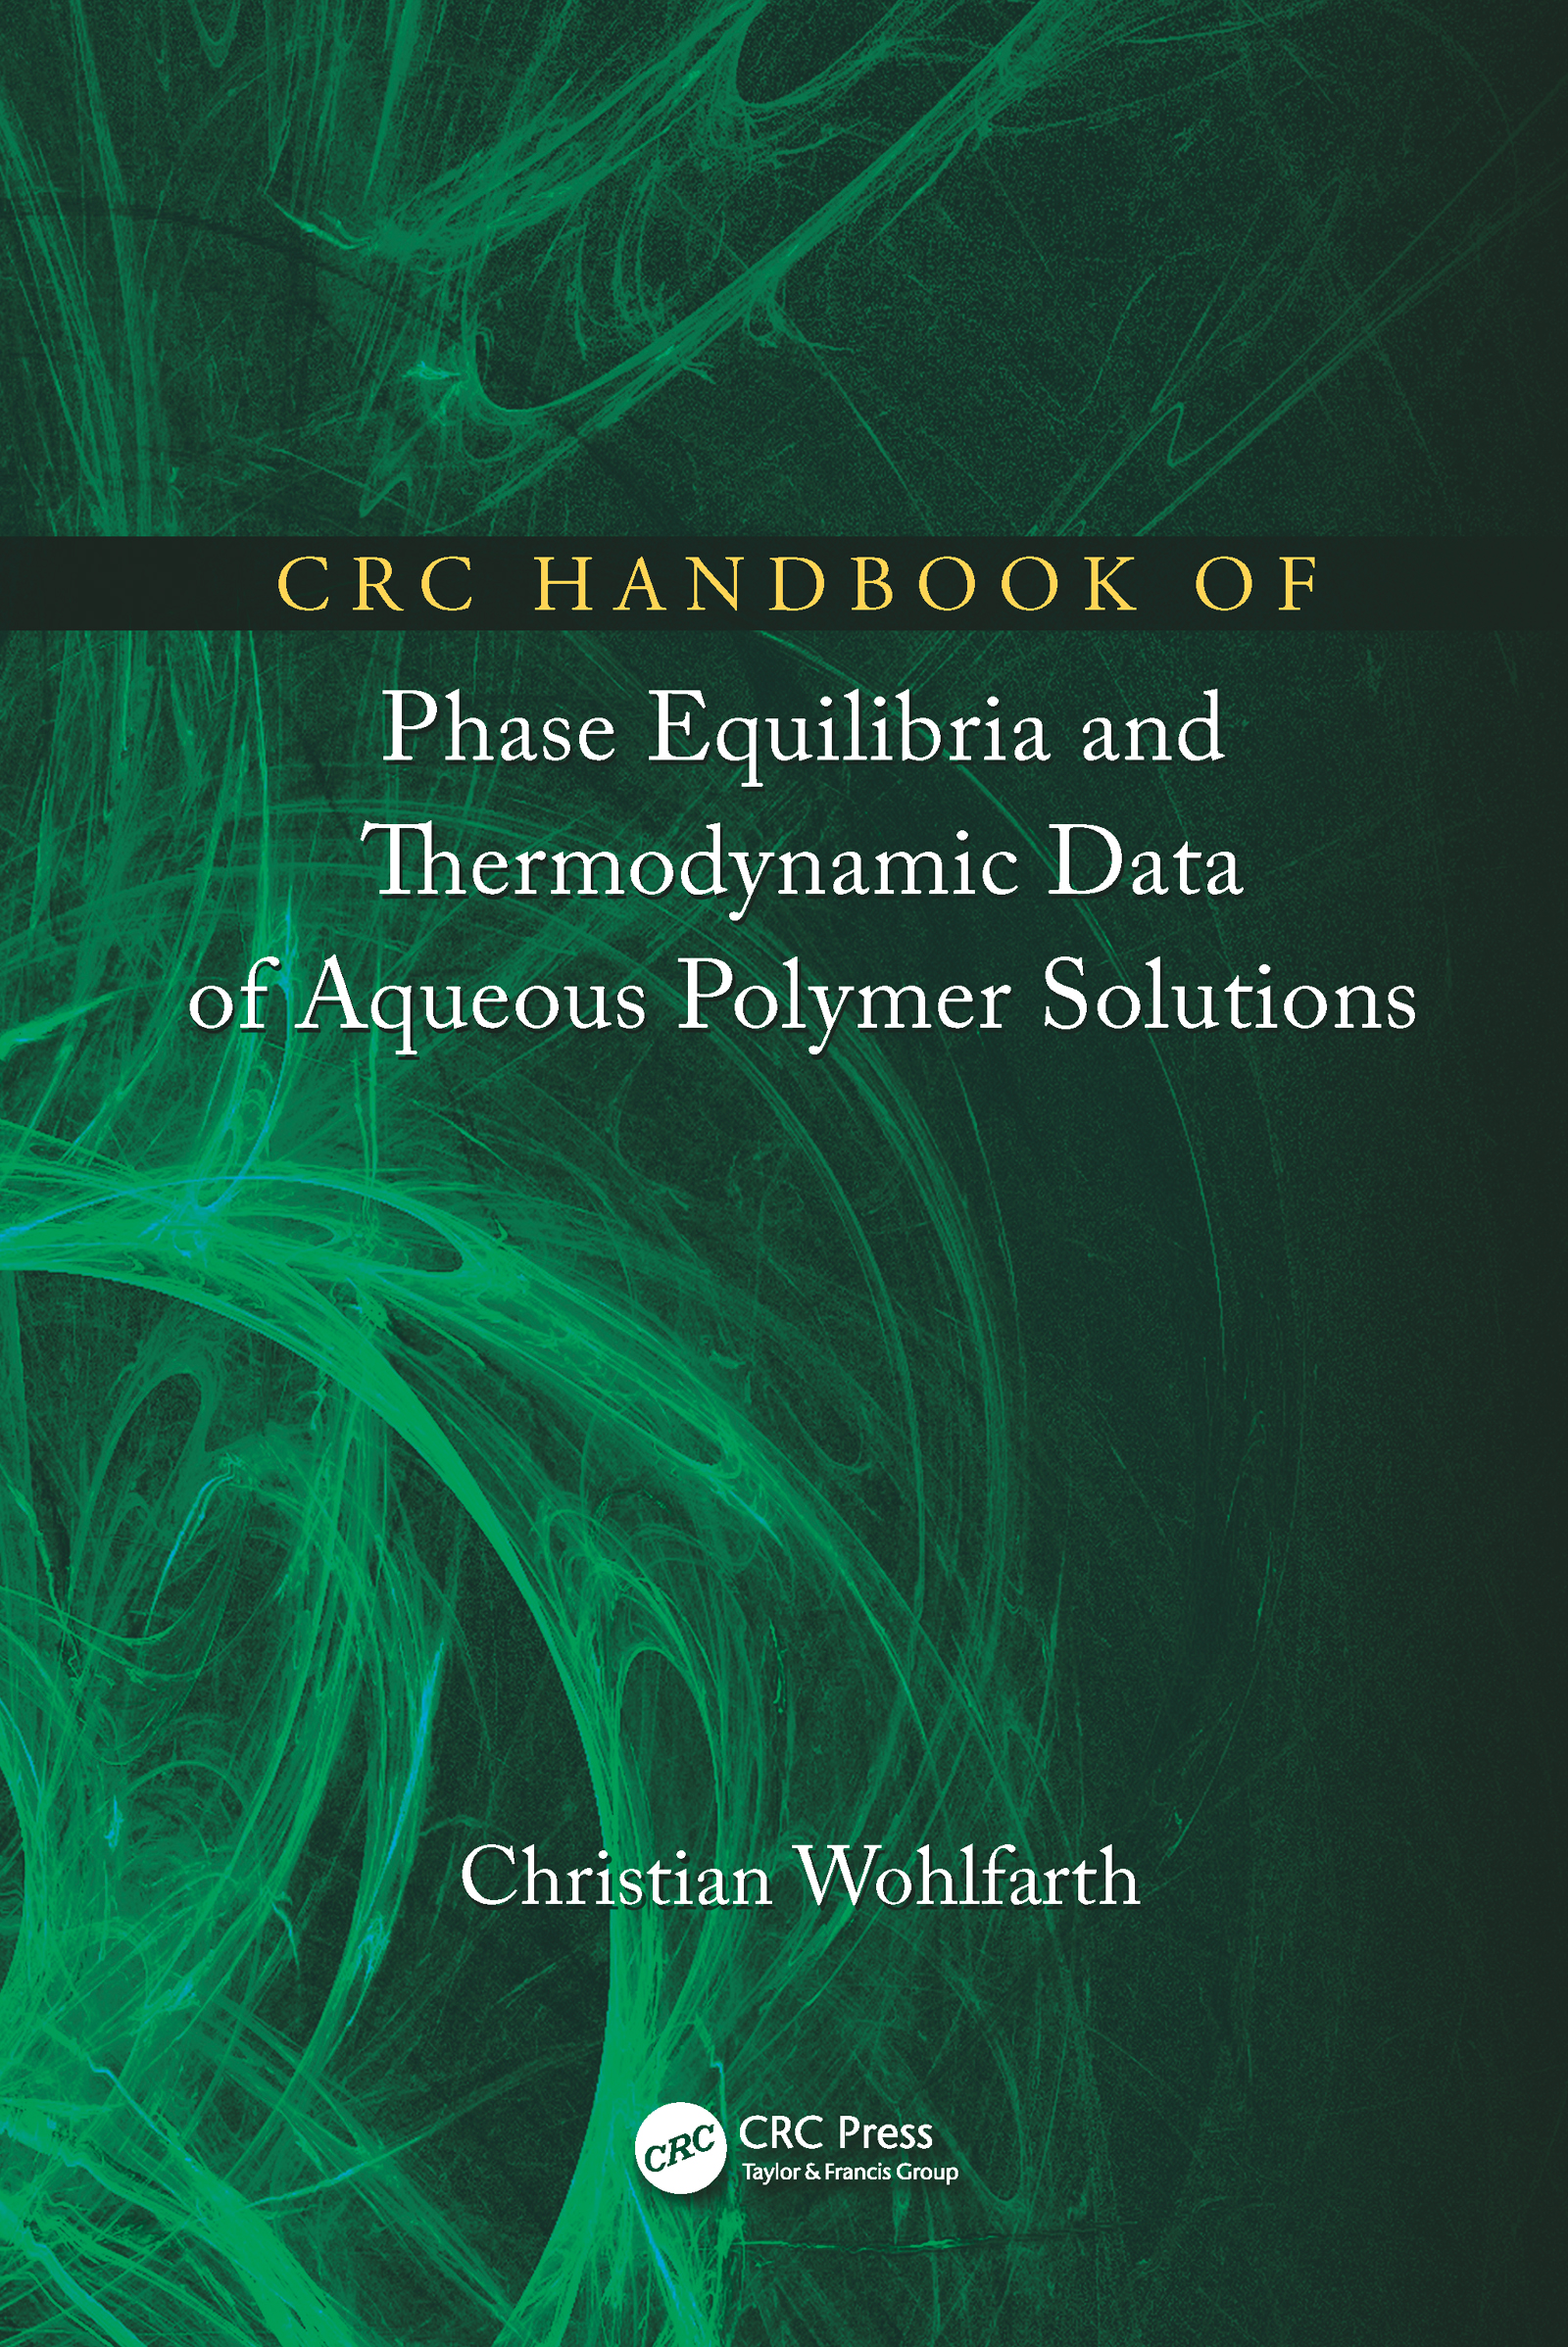 CRC Handbook of Phase Equilibria and Thermodynamic Data of Aqueous Polymer Solutions: 1st Edition (Hardback) book cover